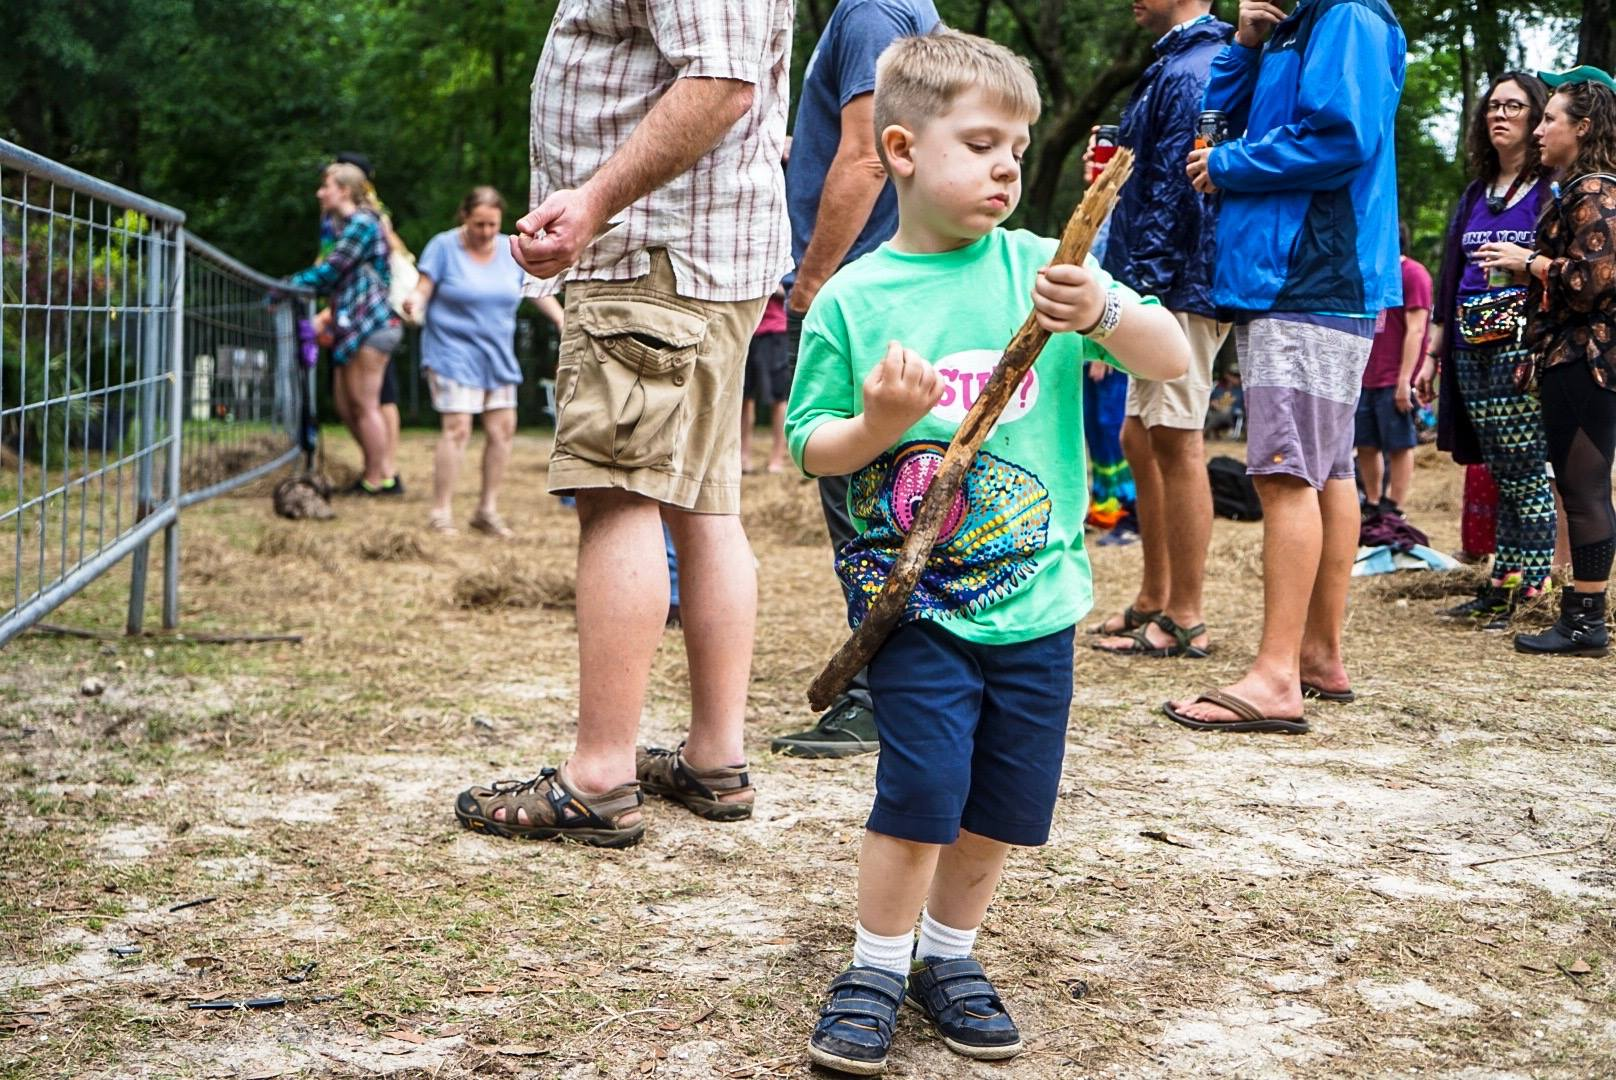 Suwannee is a great place for kids of all ages